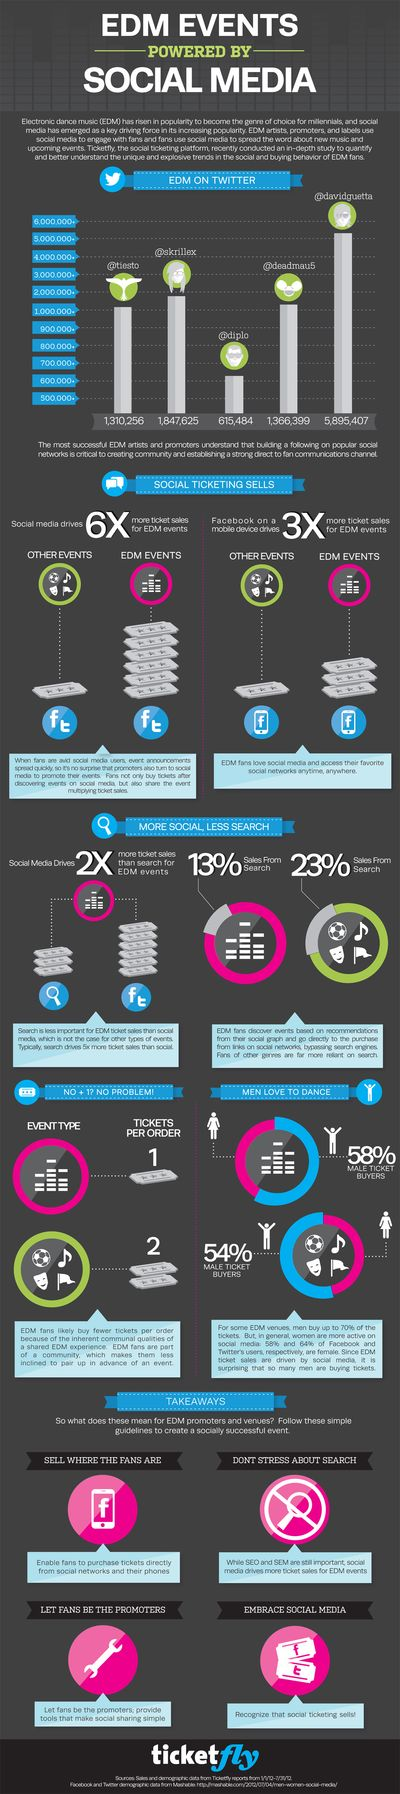 Ticketfly-Final-InfoGraphic-(1)